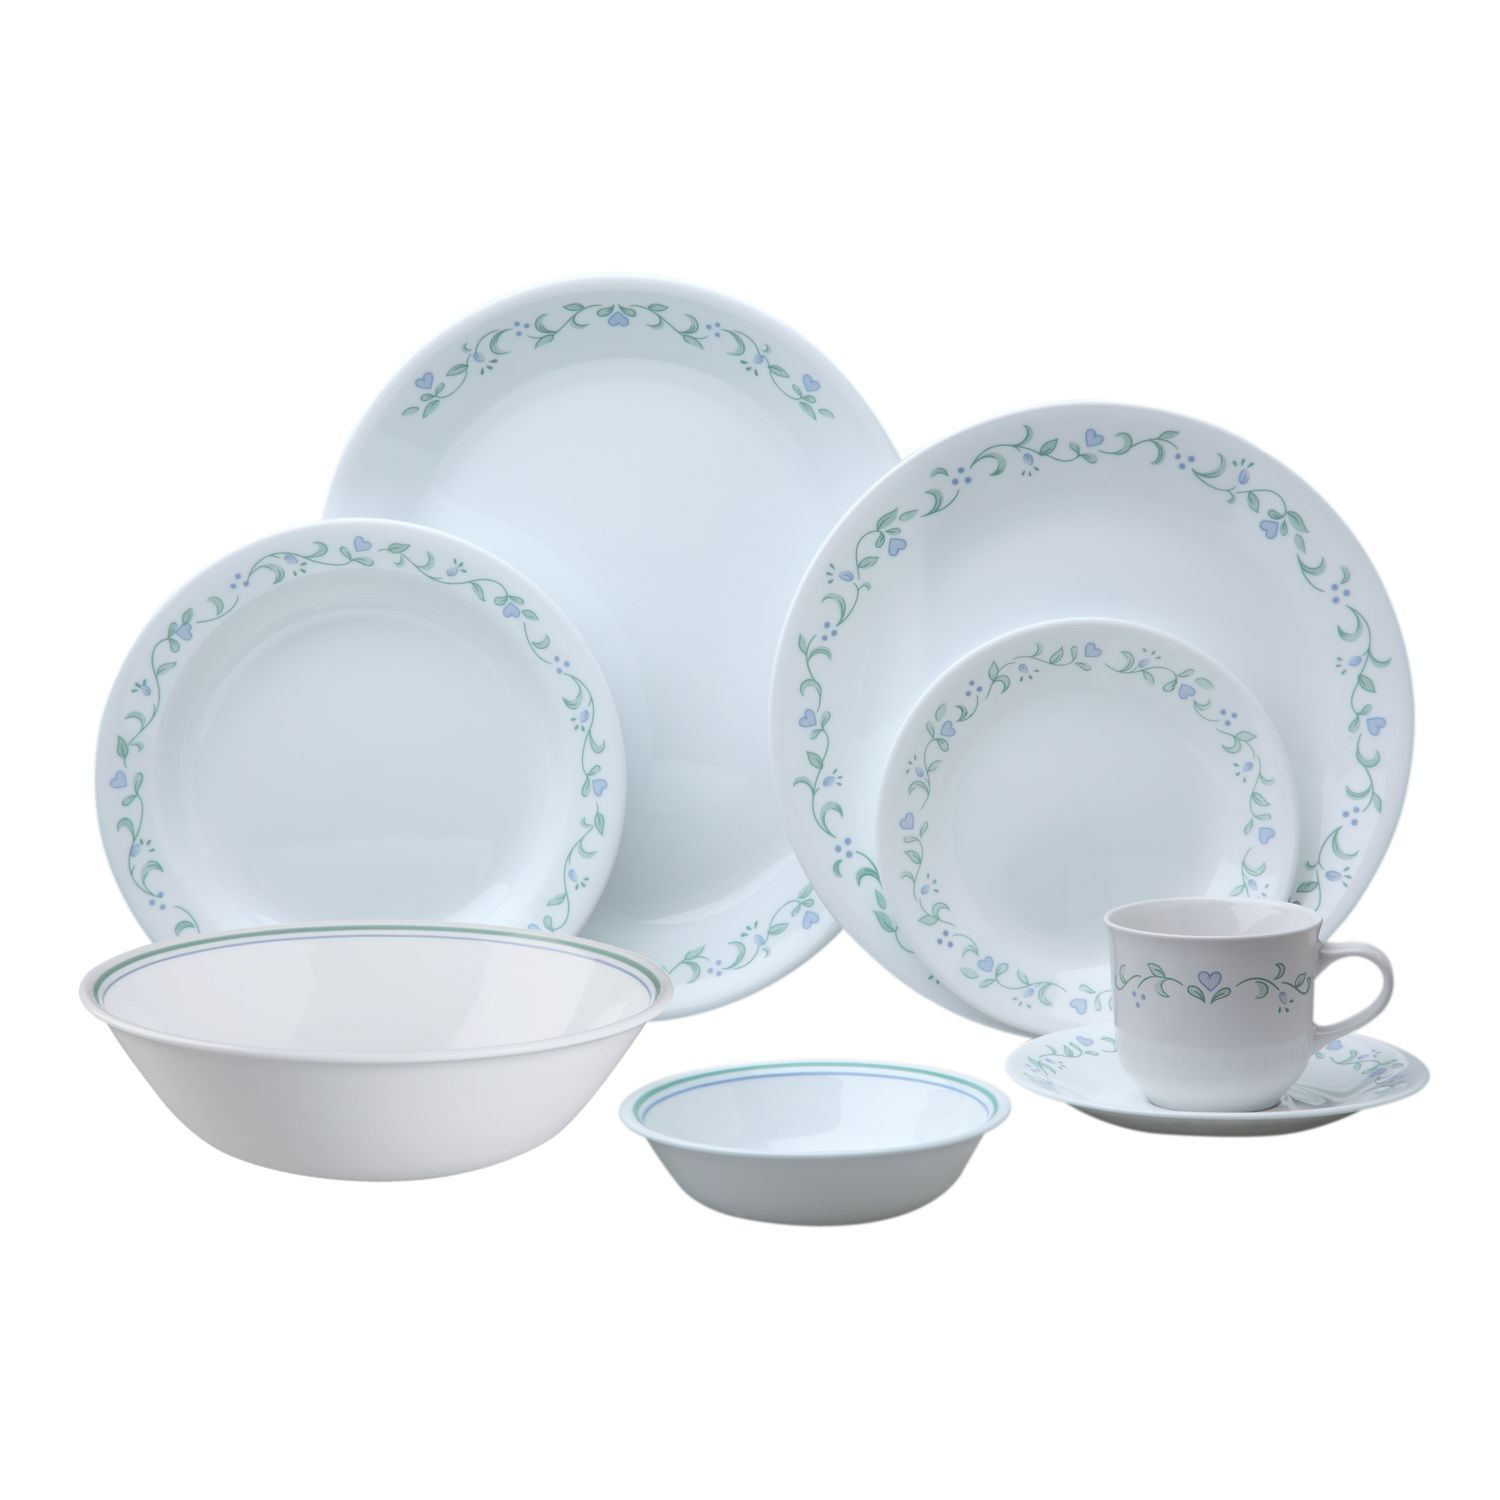 Corelle® Livingware™ Country Cottage 76-pc Dinnerware Set - Corelle  sc 1 st  Pinterest & Corelle® Livingware™ Country Cottage 76-pc Dinnerware Set - Corelle ...